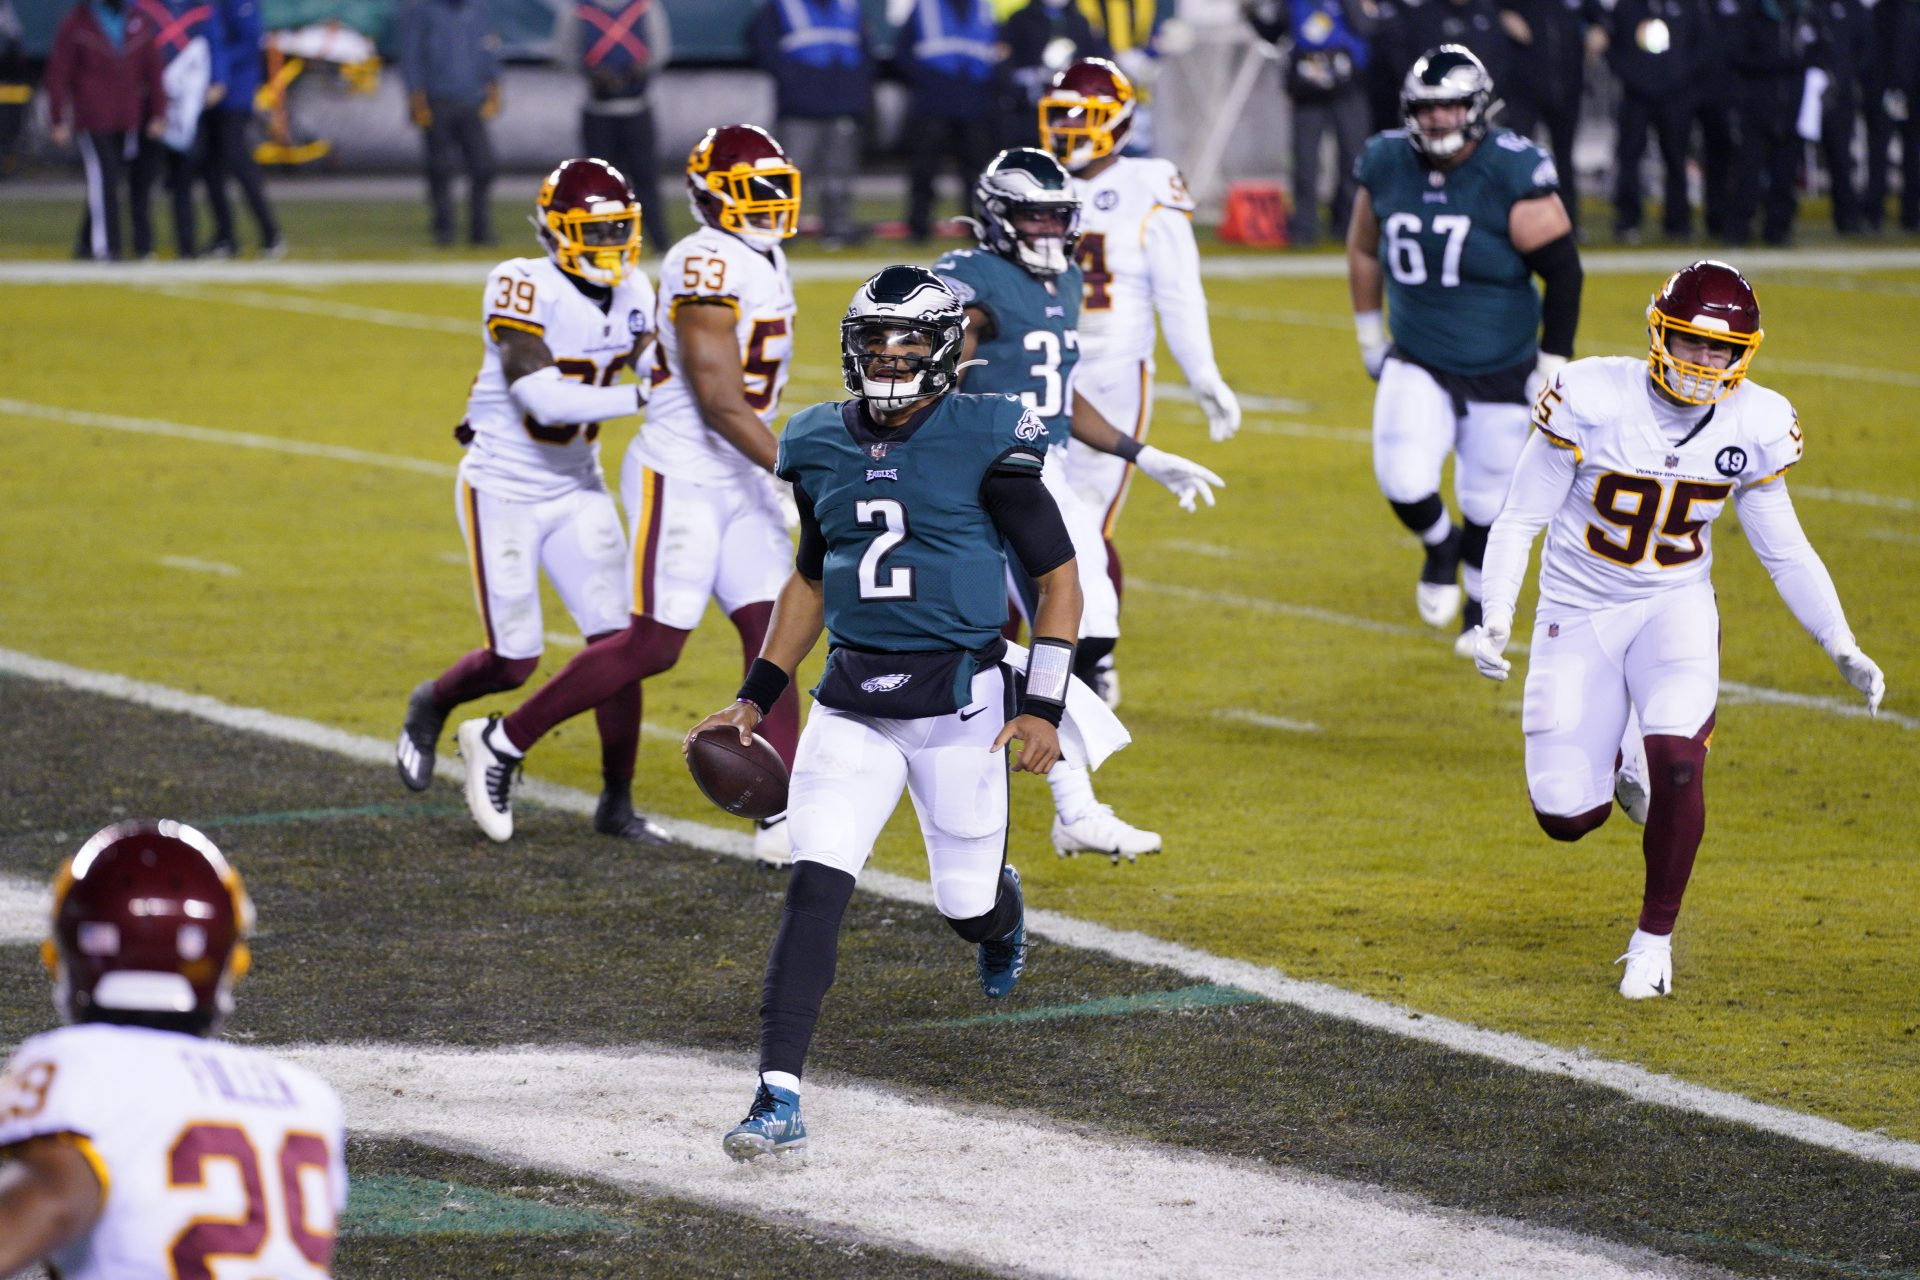 Philadelphia Eagles' Jalen Hurts (2) scores a touchdown during the first half of an NFL football game against the Washington Football Team, Sunday, Jan. 3, 2021, in Philadelphia.